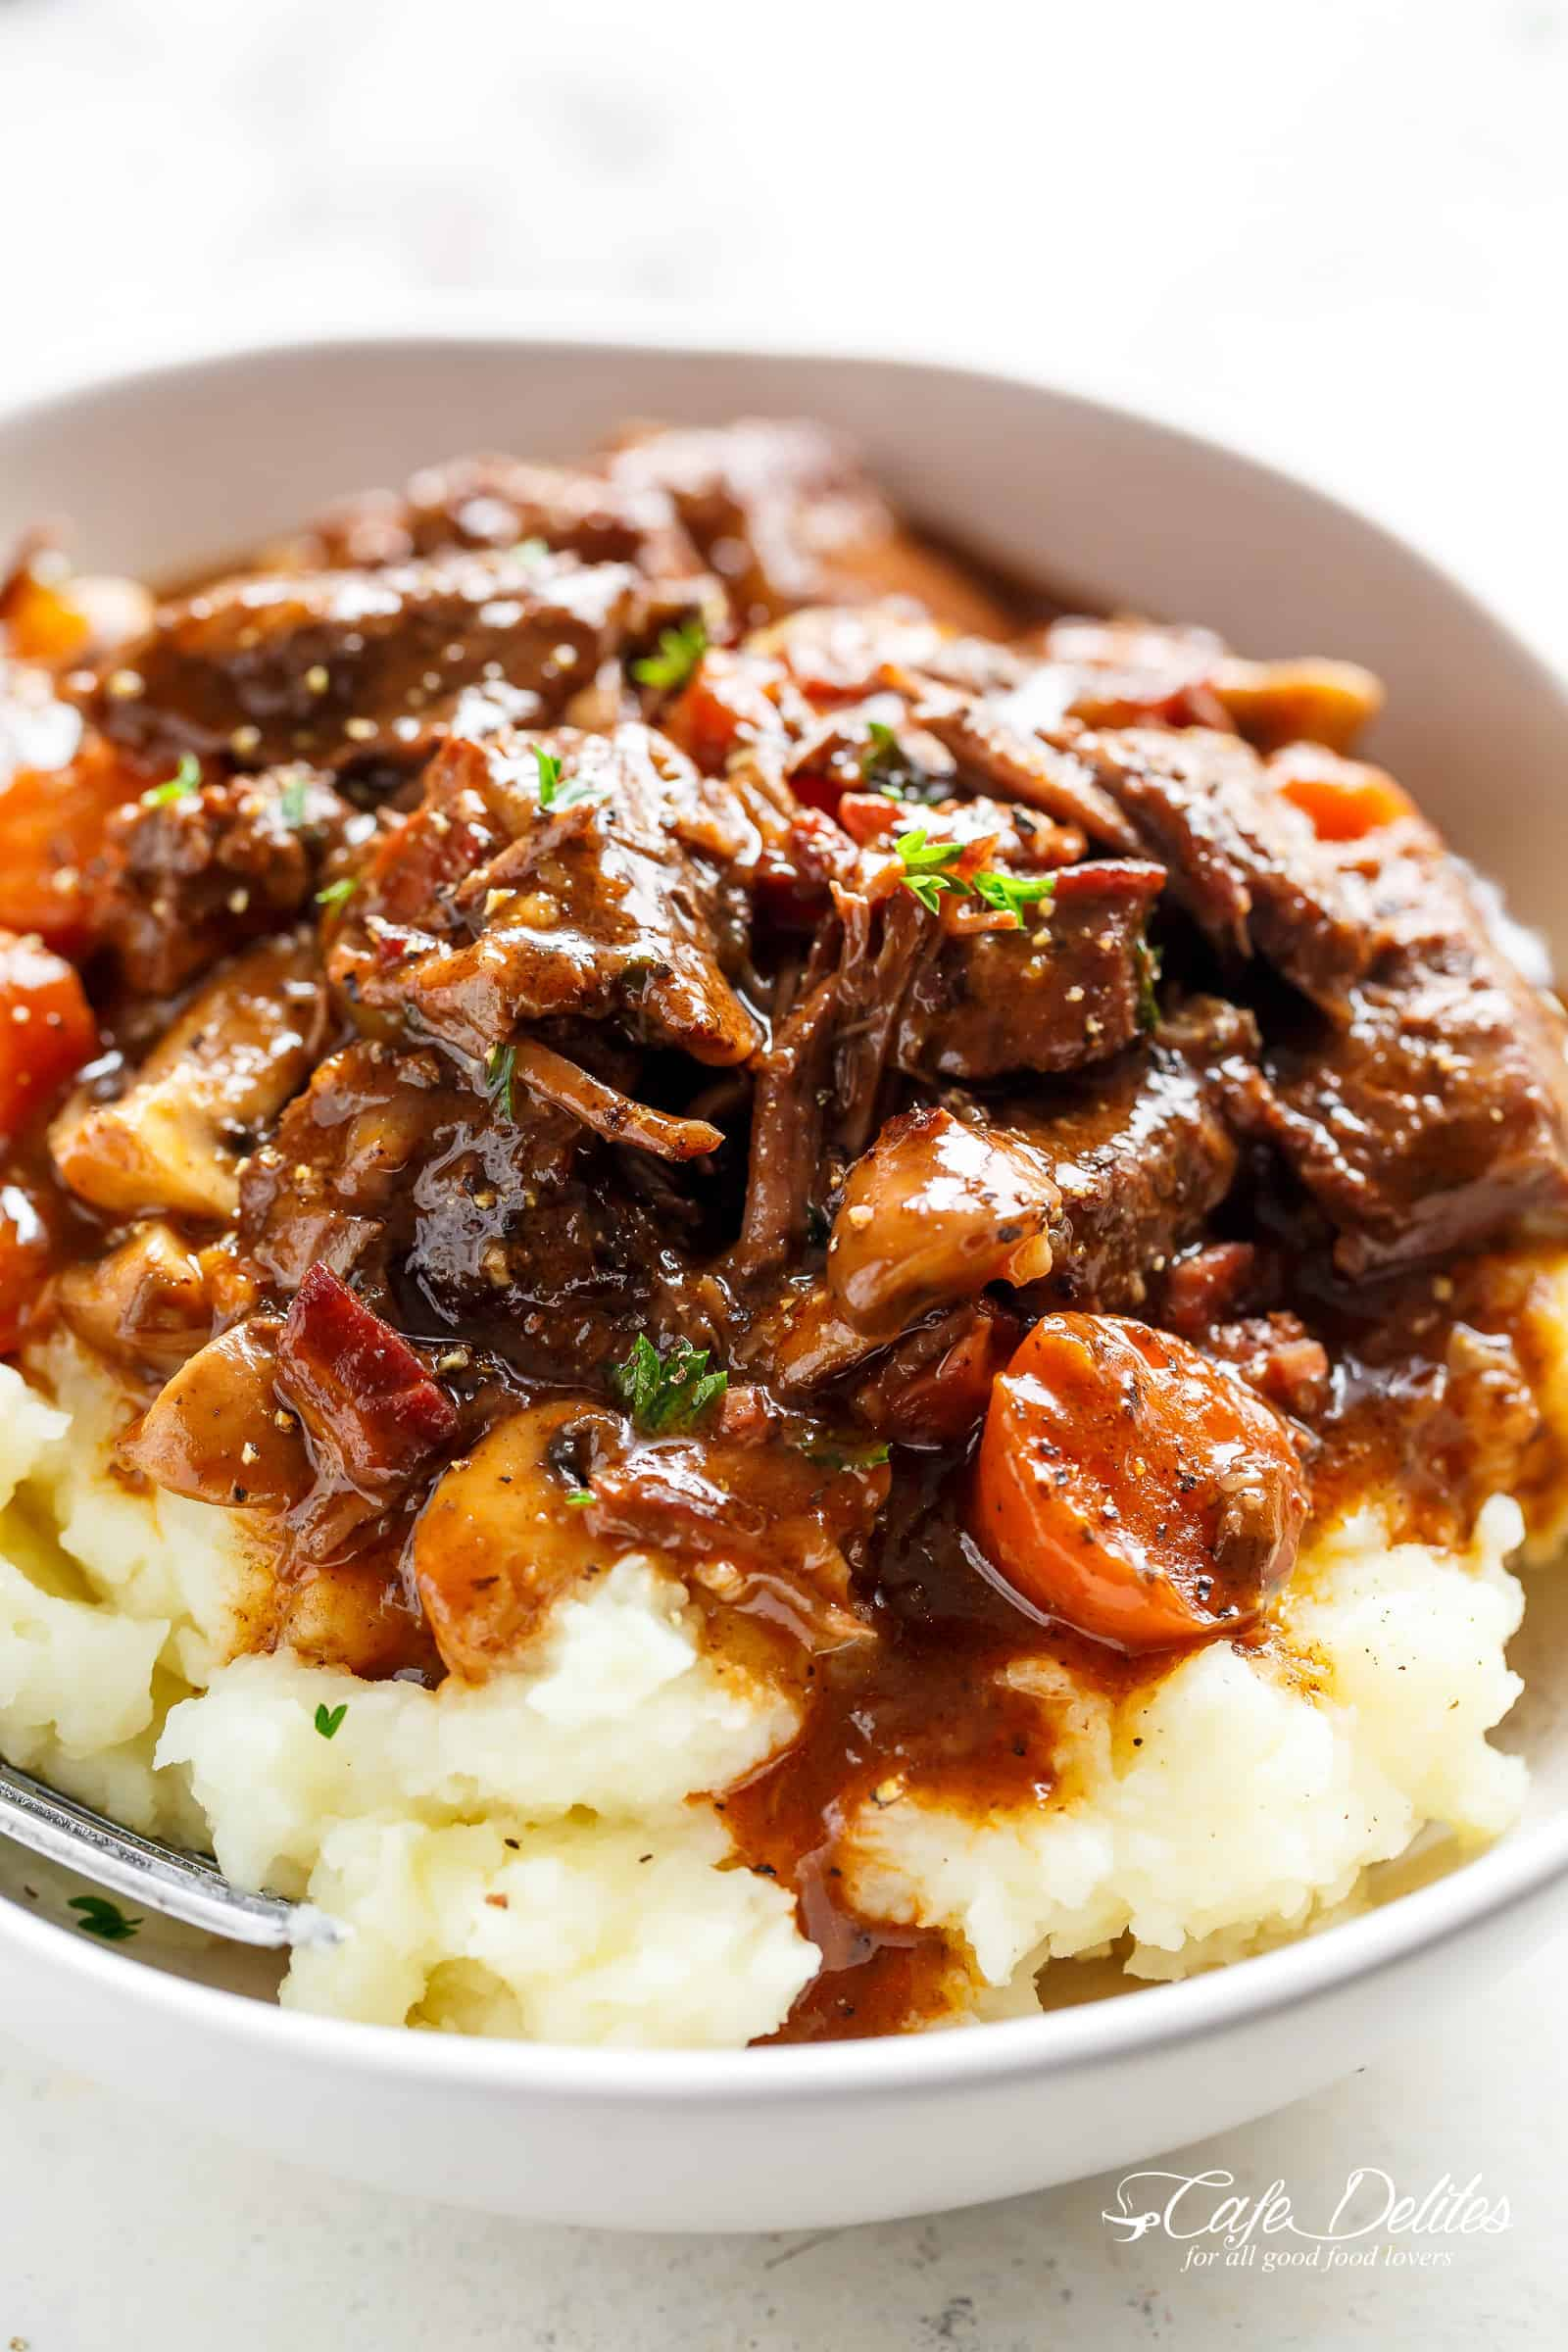 Beef Bourguignon with mashed potatoes | cafedelites.com